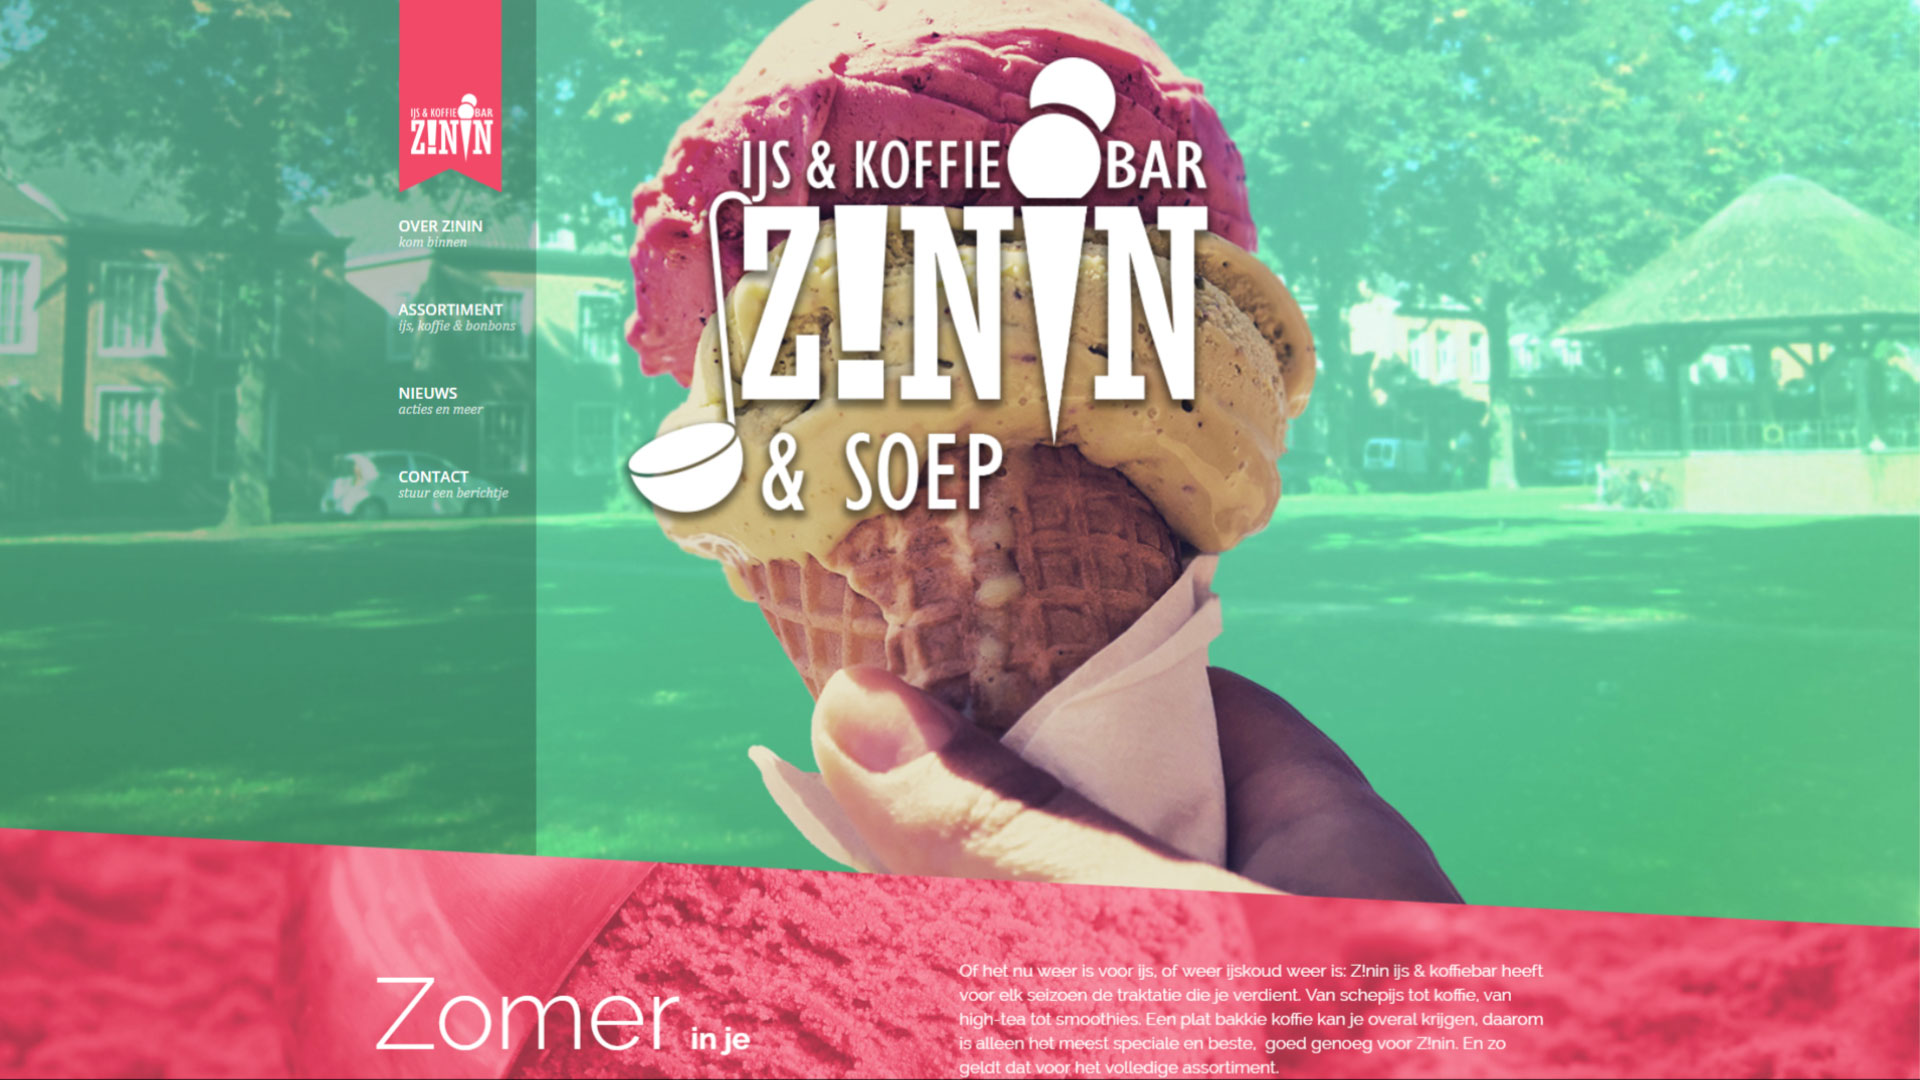 Website - Zinin IJs & Koffiebar